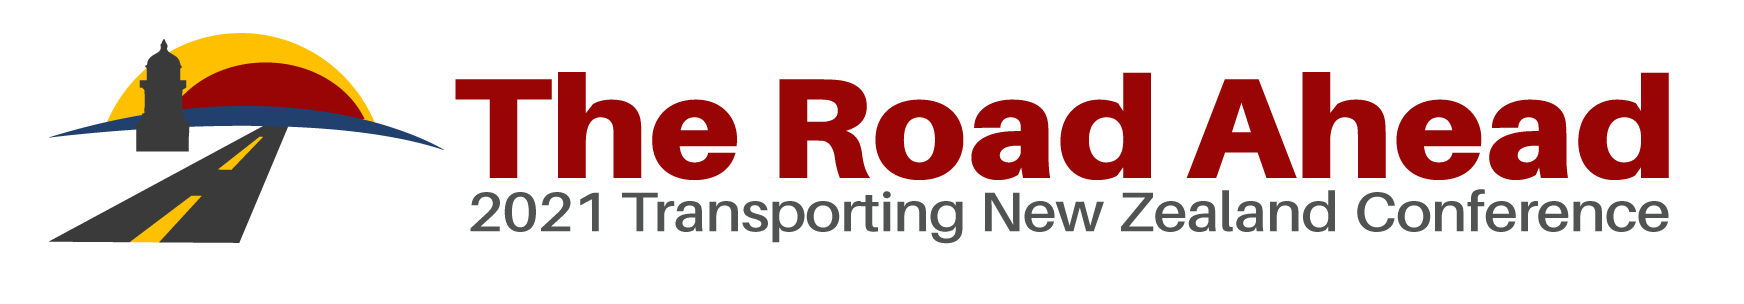 Road Transport Forum Conference 2021